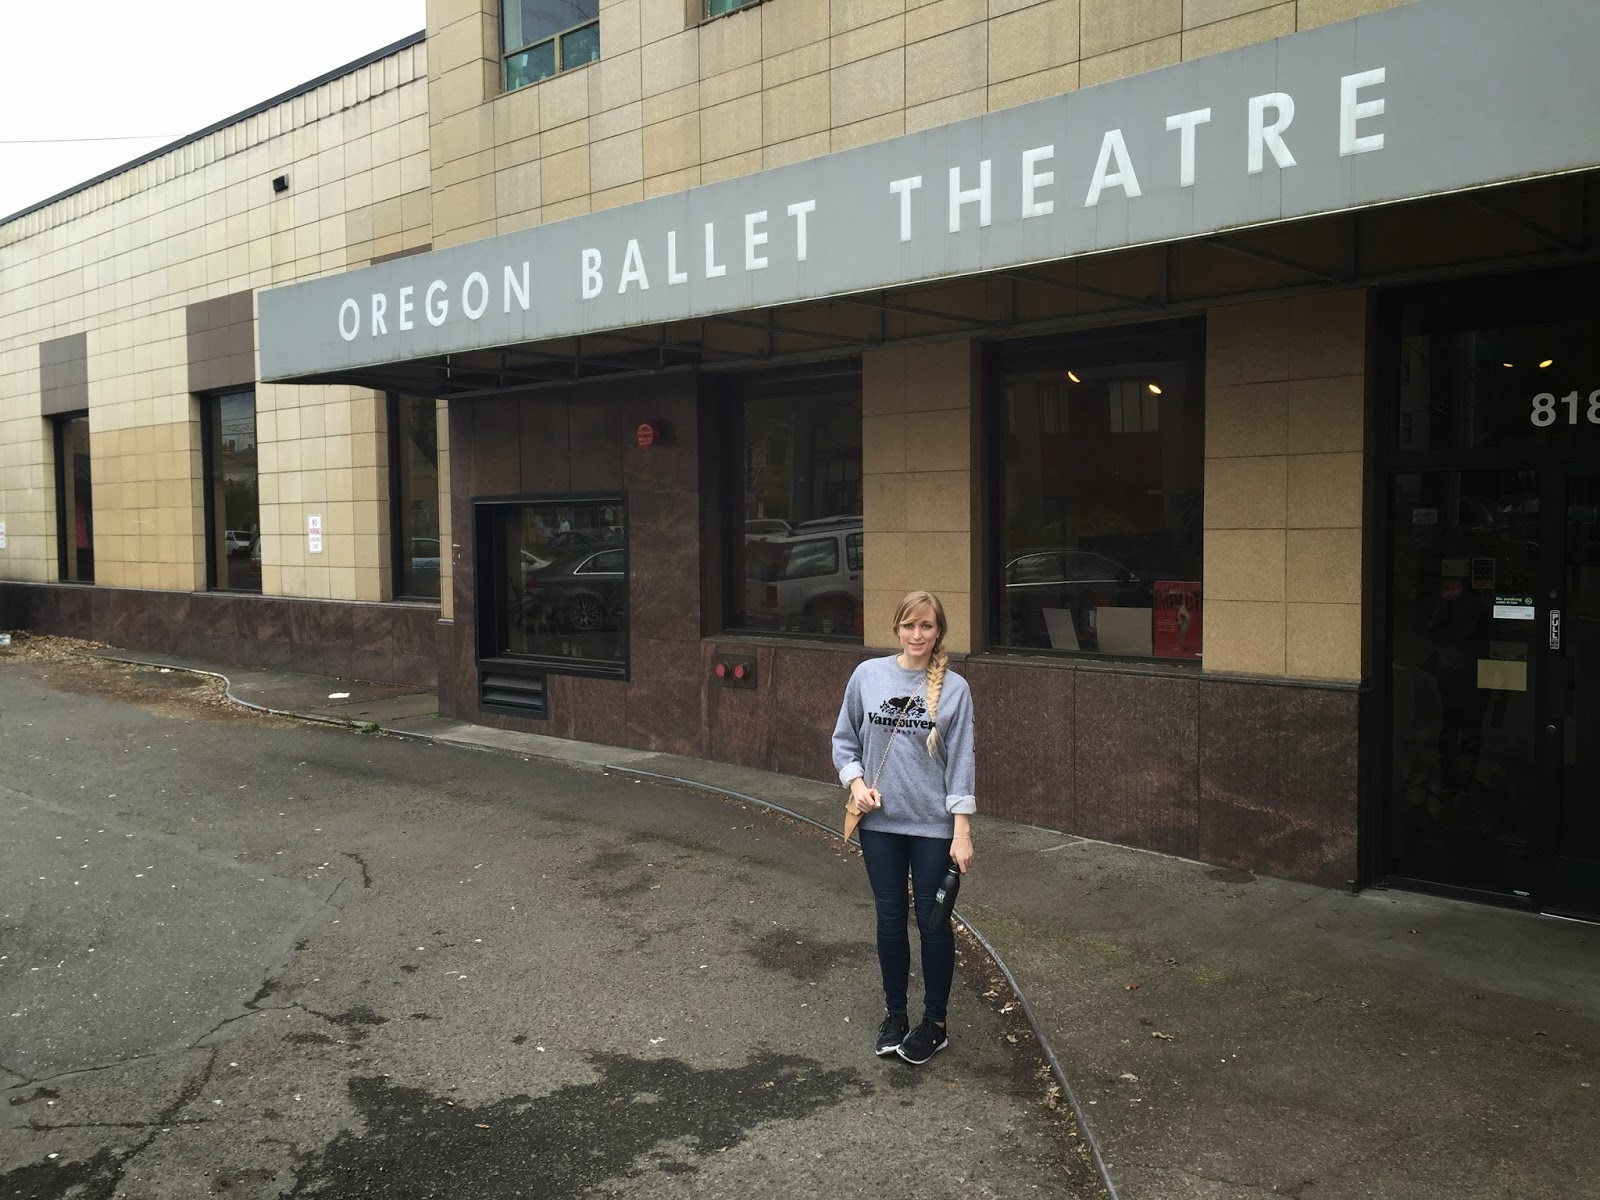 oregon-ballet-theatre-visit